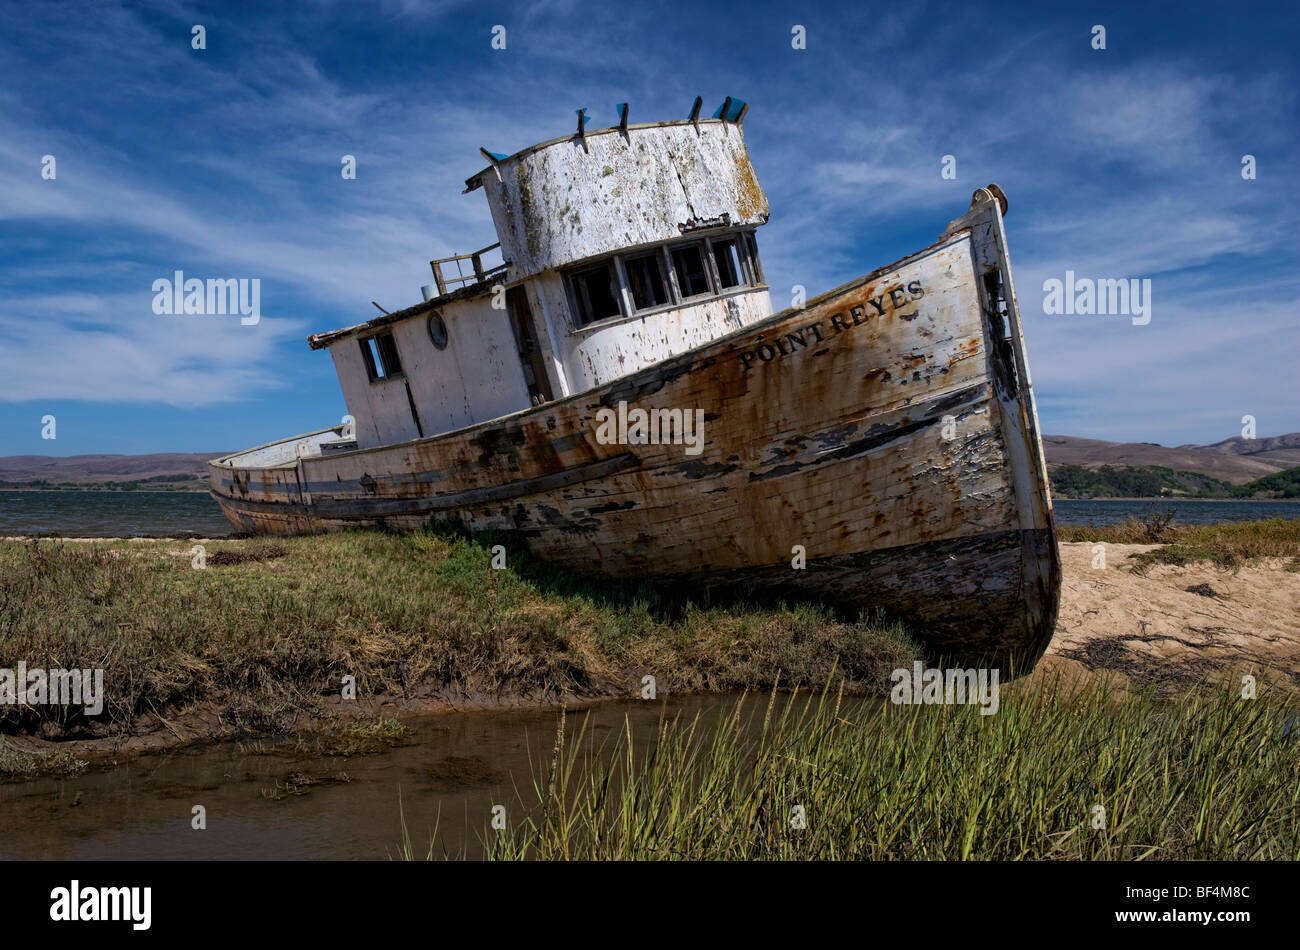 Stranded wreck of the 'Point Reyes' near Inverness, California, USA - Stock Image